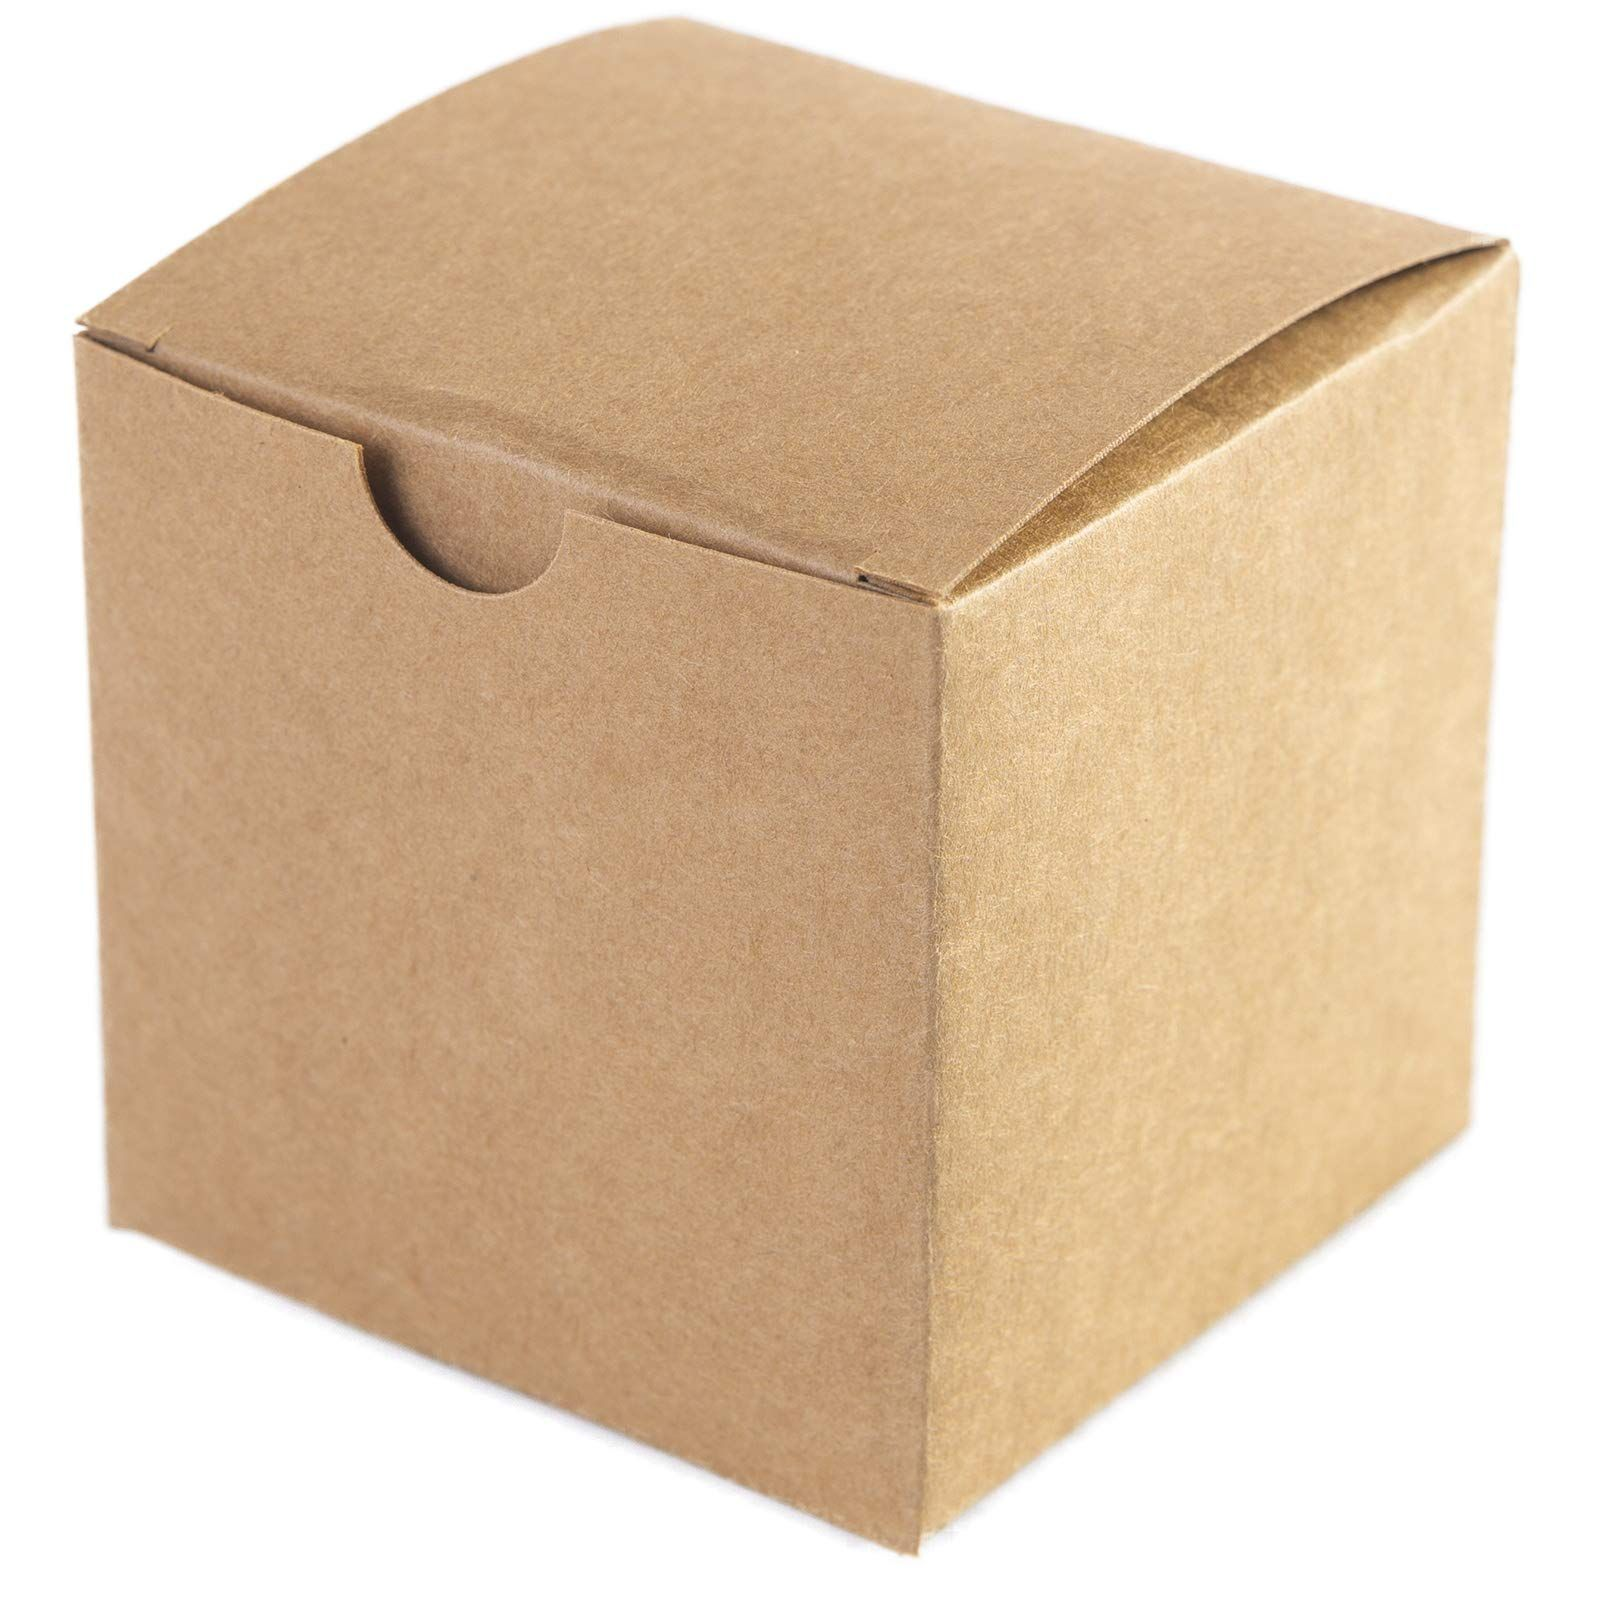 100pcs Kraft Favor Boxes3x3x3 Inches Brown Paper Gift Boxes With Lids For Gifts Crafting Cupcake Boxes Brown Gift Boxes With Lids Paper Gift Box Paper Gifts